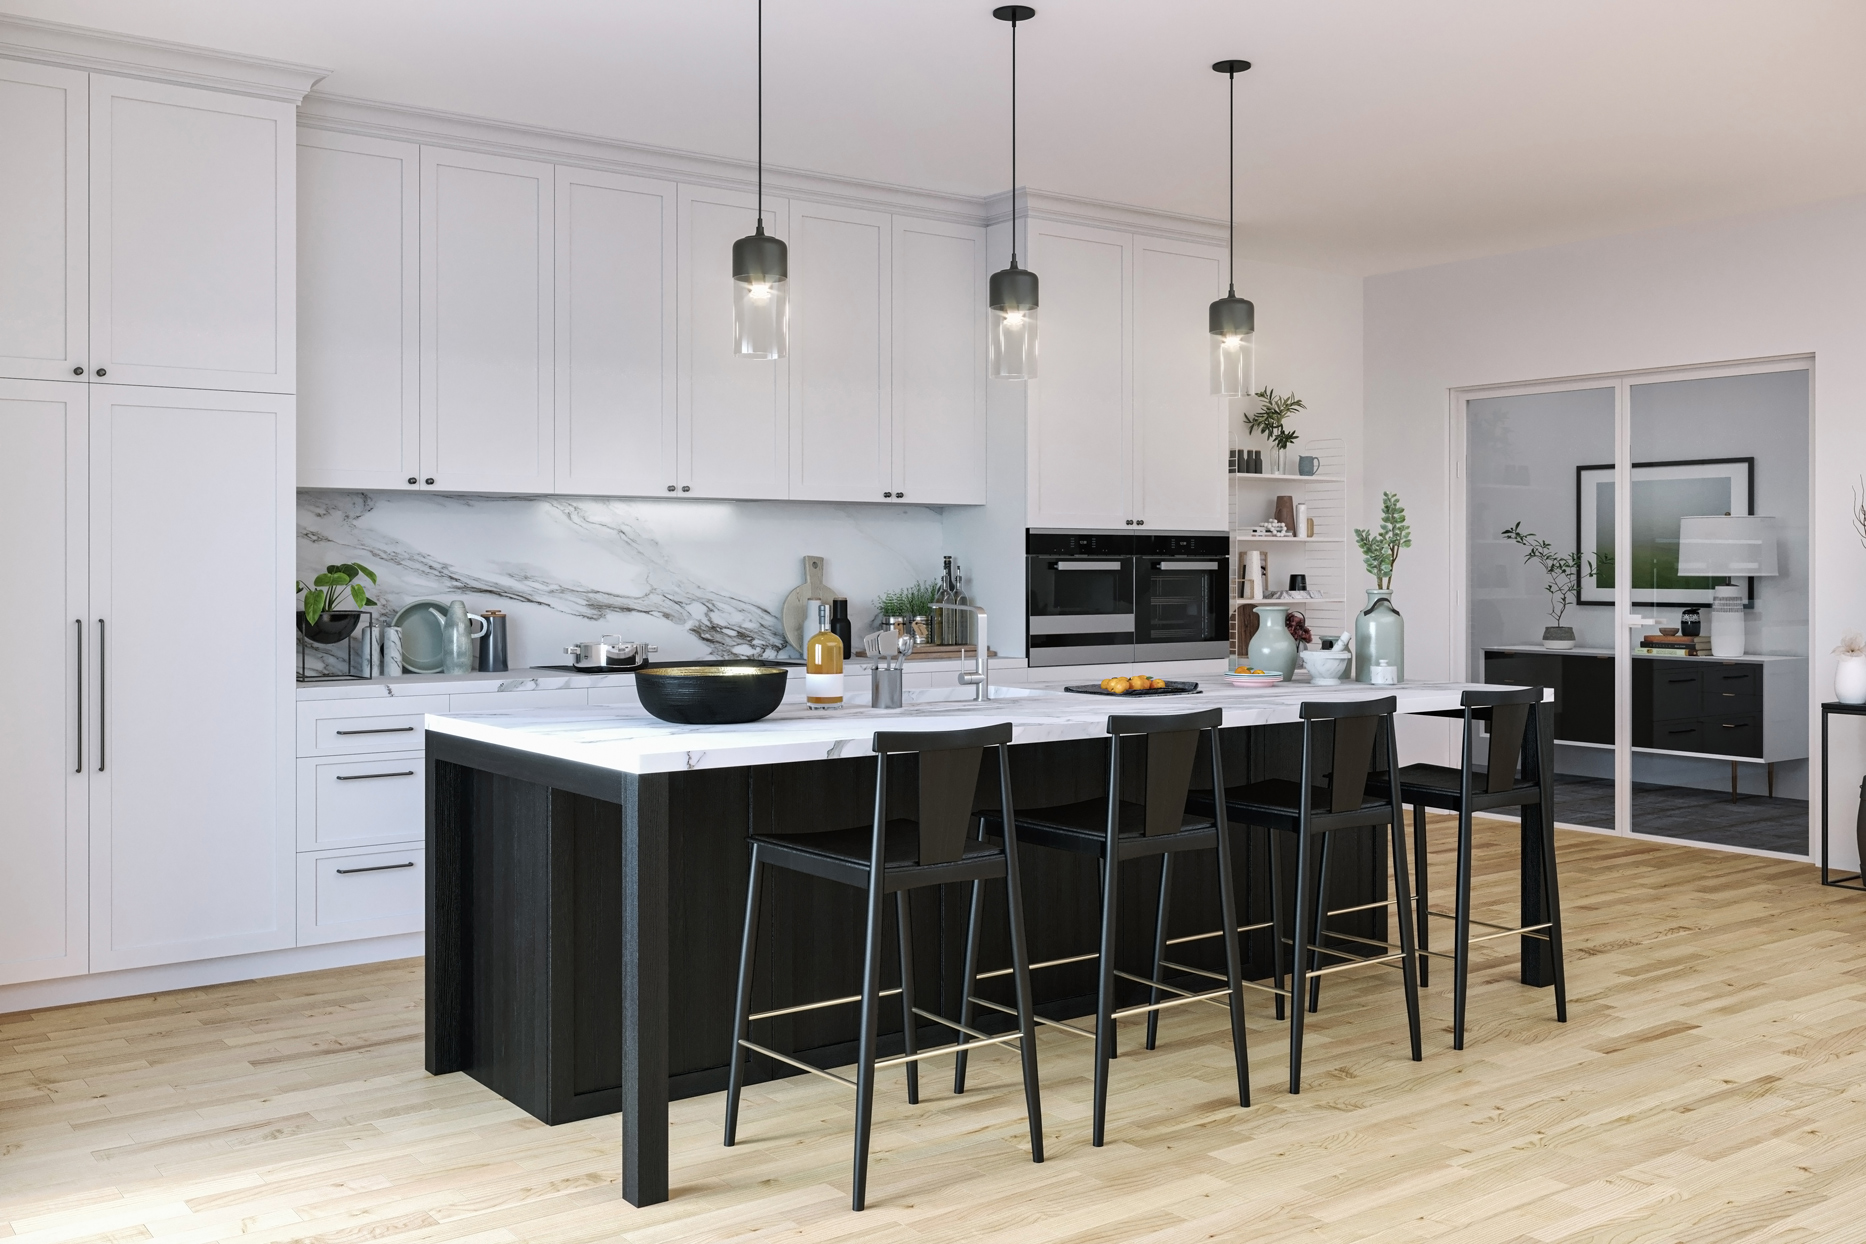 white floor to ceiling kitchen cabinets with white marble backsplash and island with black bar chairs